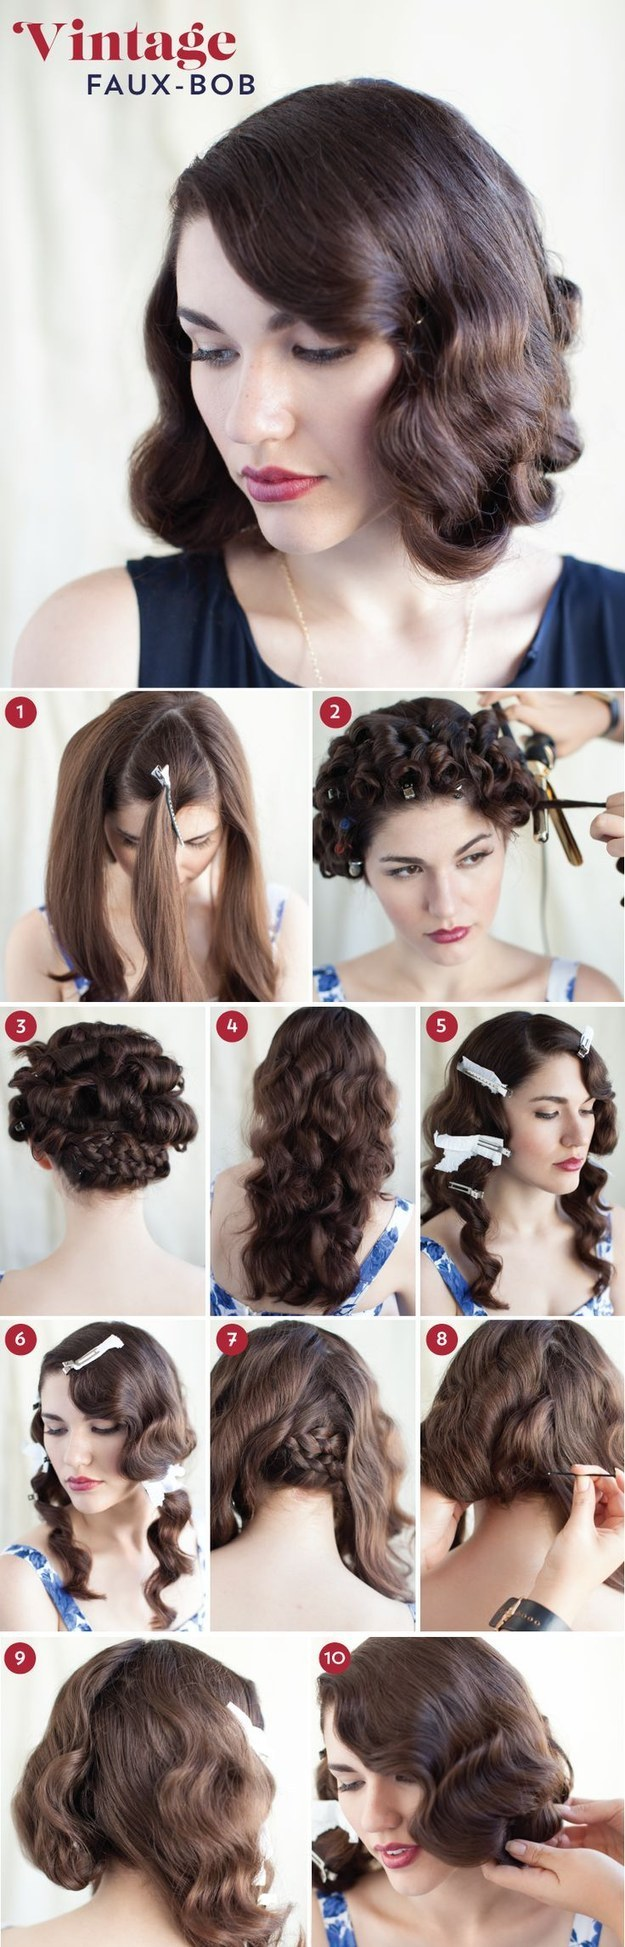 32 Vintage Hairstyle Tutorials You Should Not Miss Styles Weekly